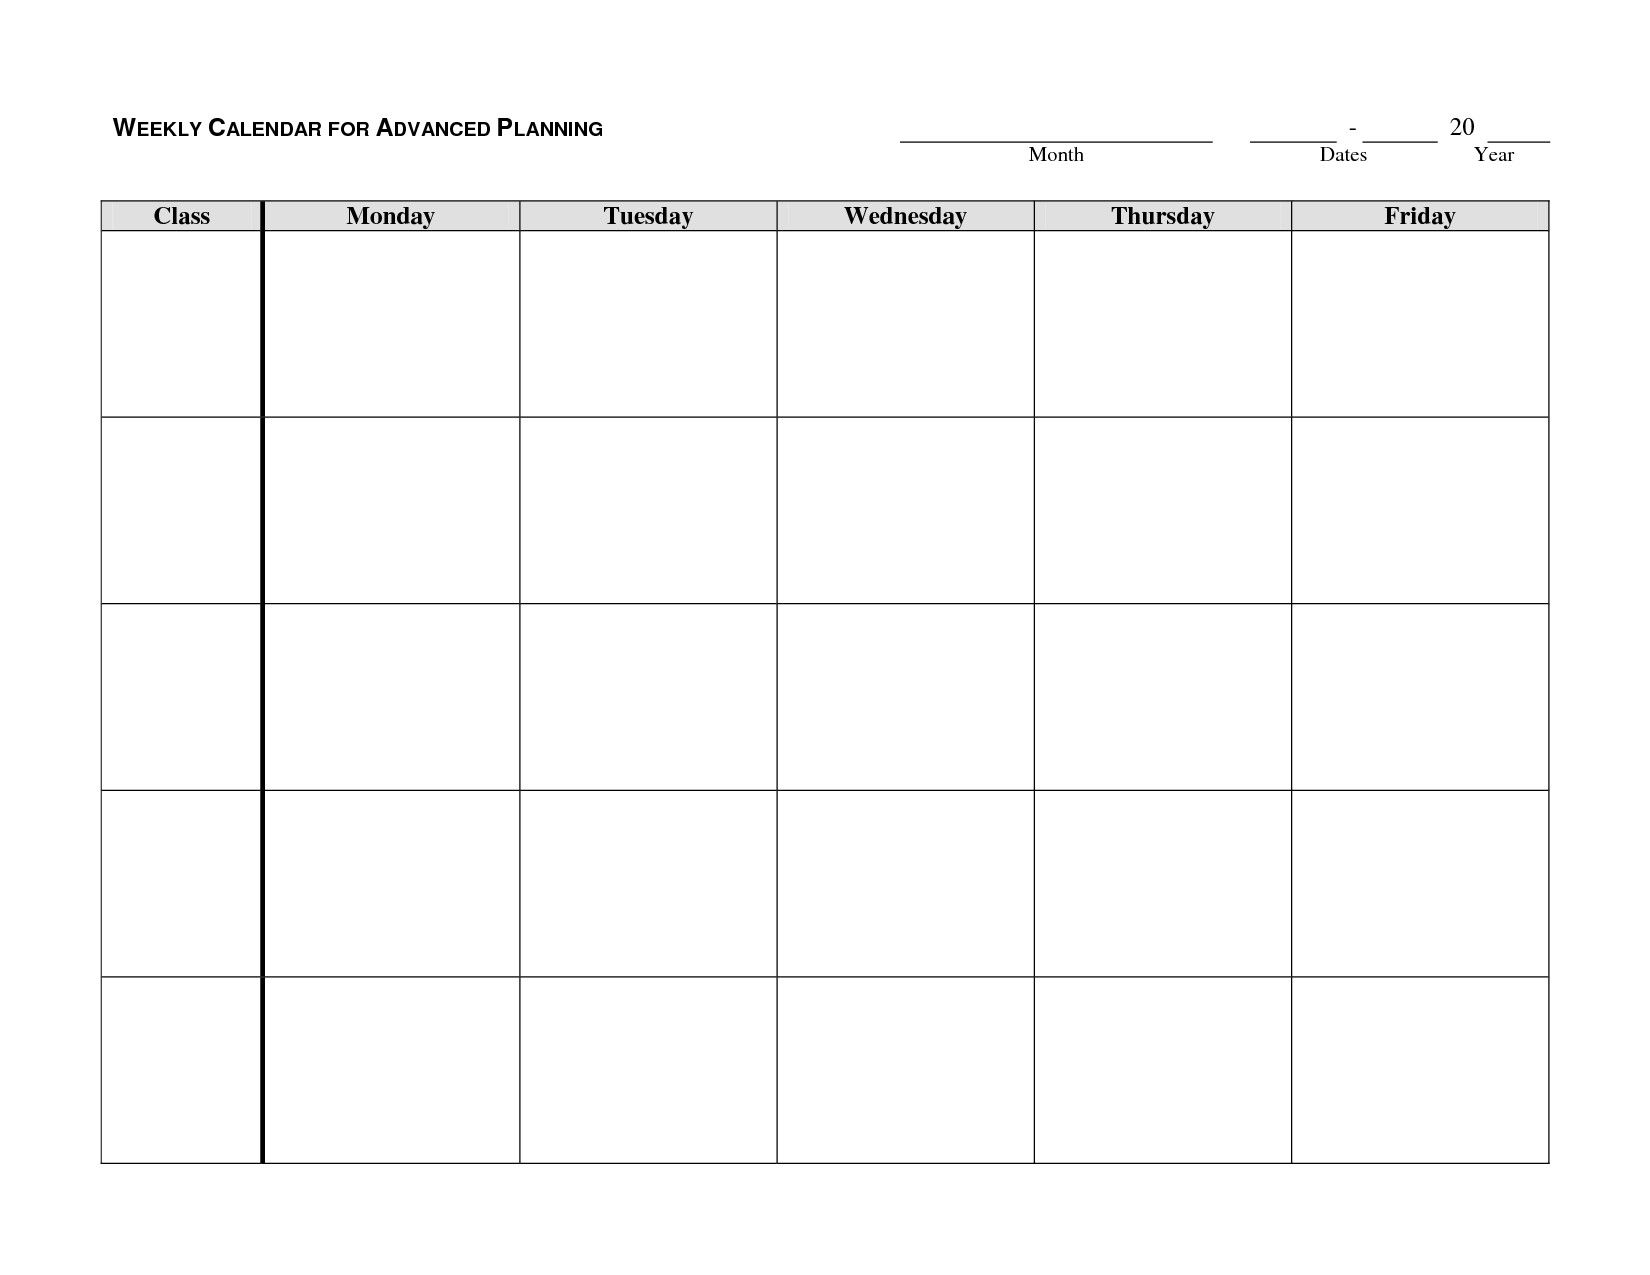 Printable Calendar Monday Through Friday  Yolar.cinetonic pertaining to Blank Calendar Template Monday Through Friday